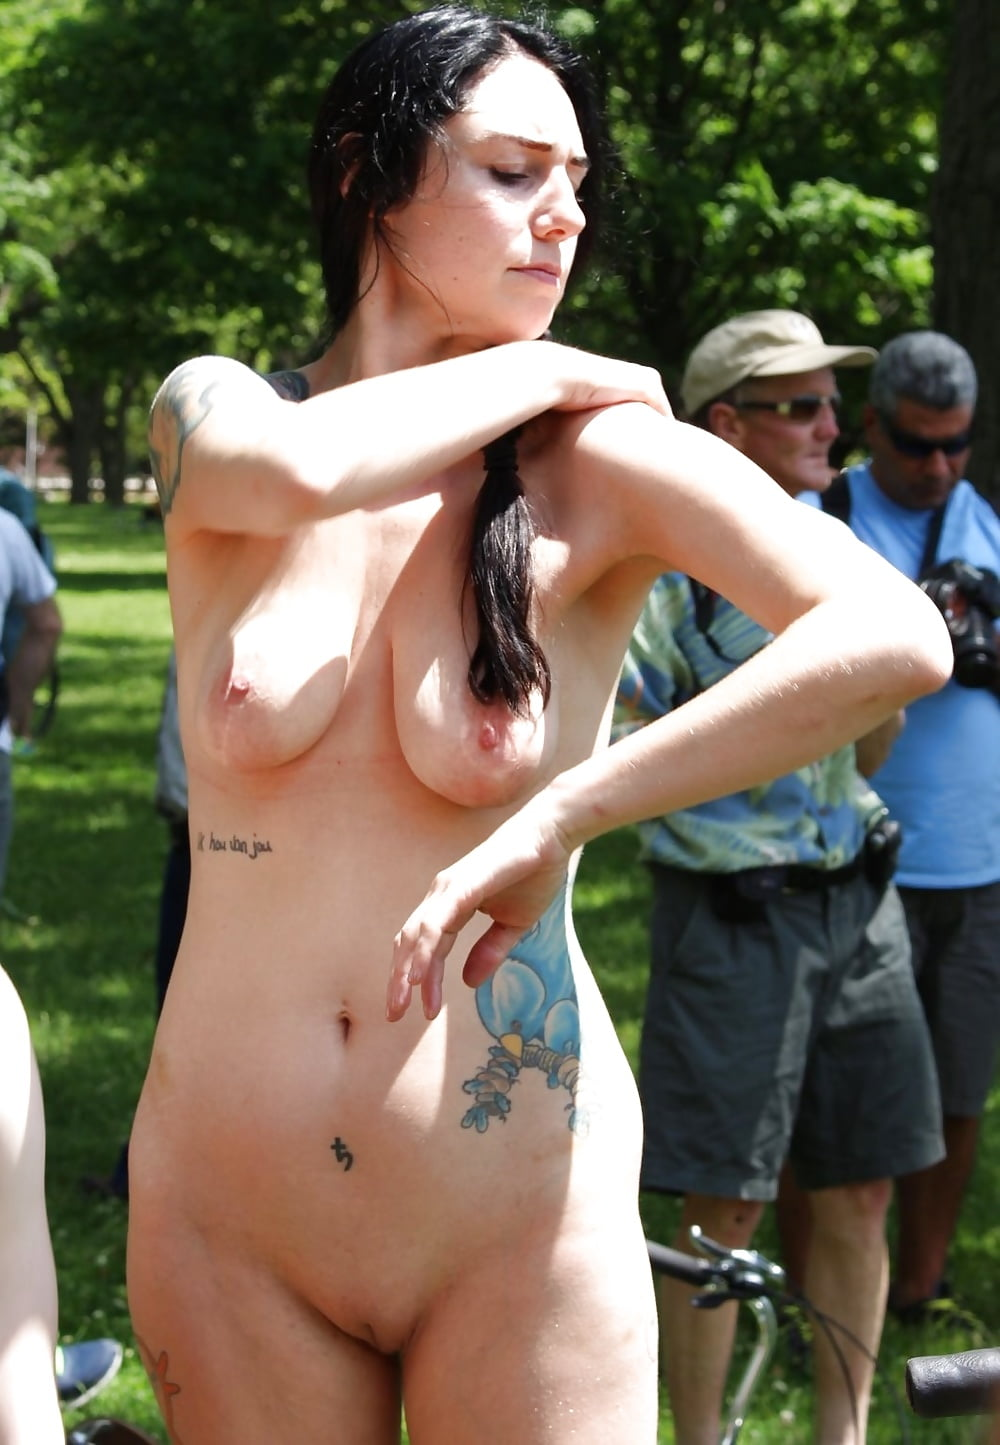 number-hottest-chick-in-the-world-naked-twinke-anal-sex